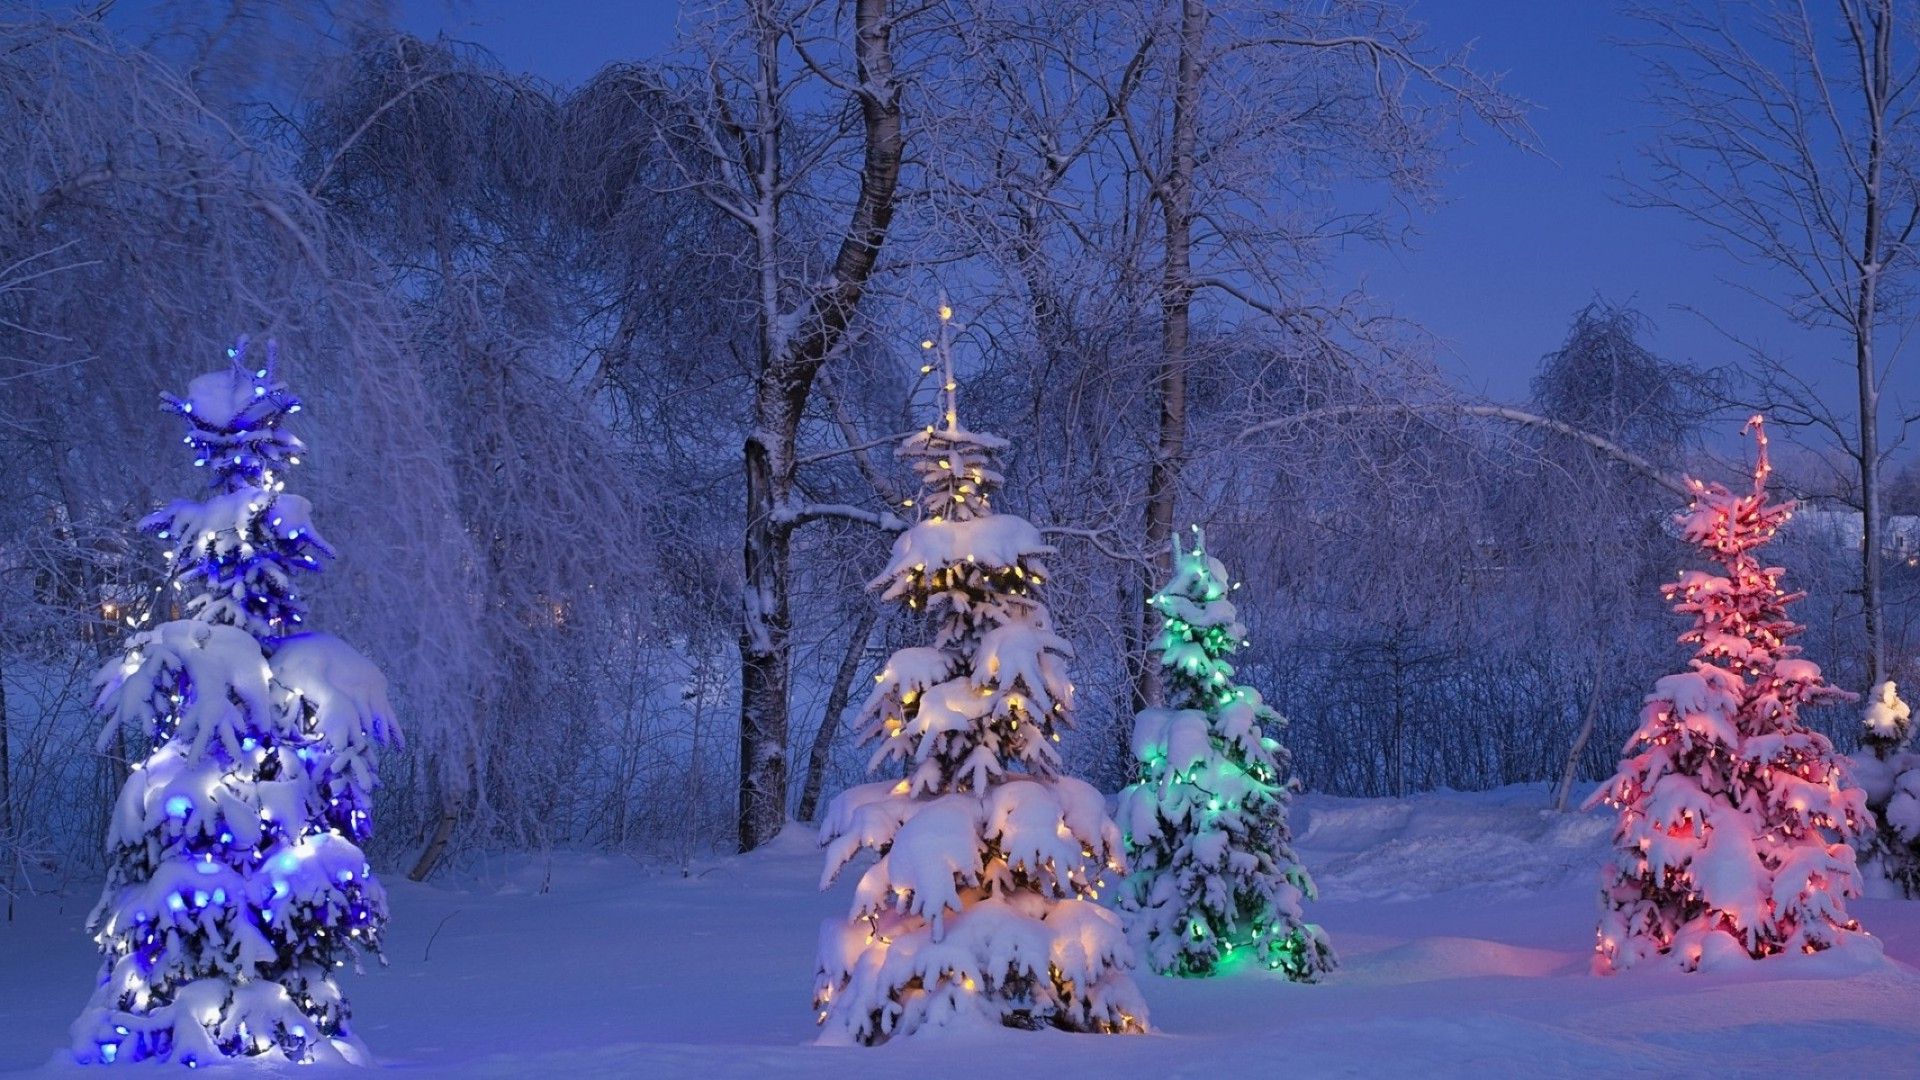 Christmas tree ornaments android wallpapers for free - Christmas nature wallpaper ...